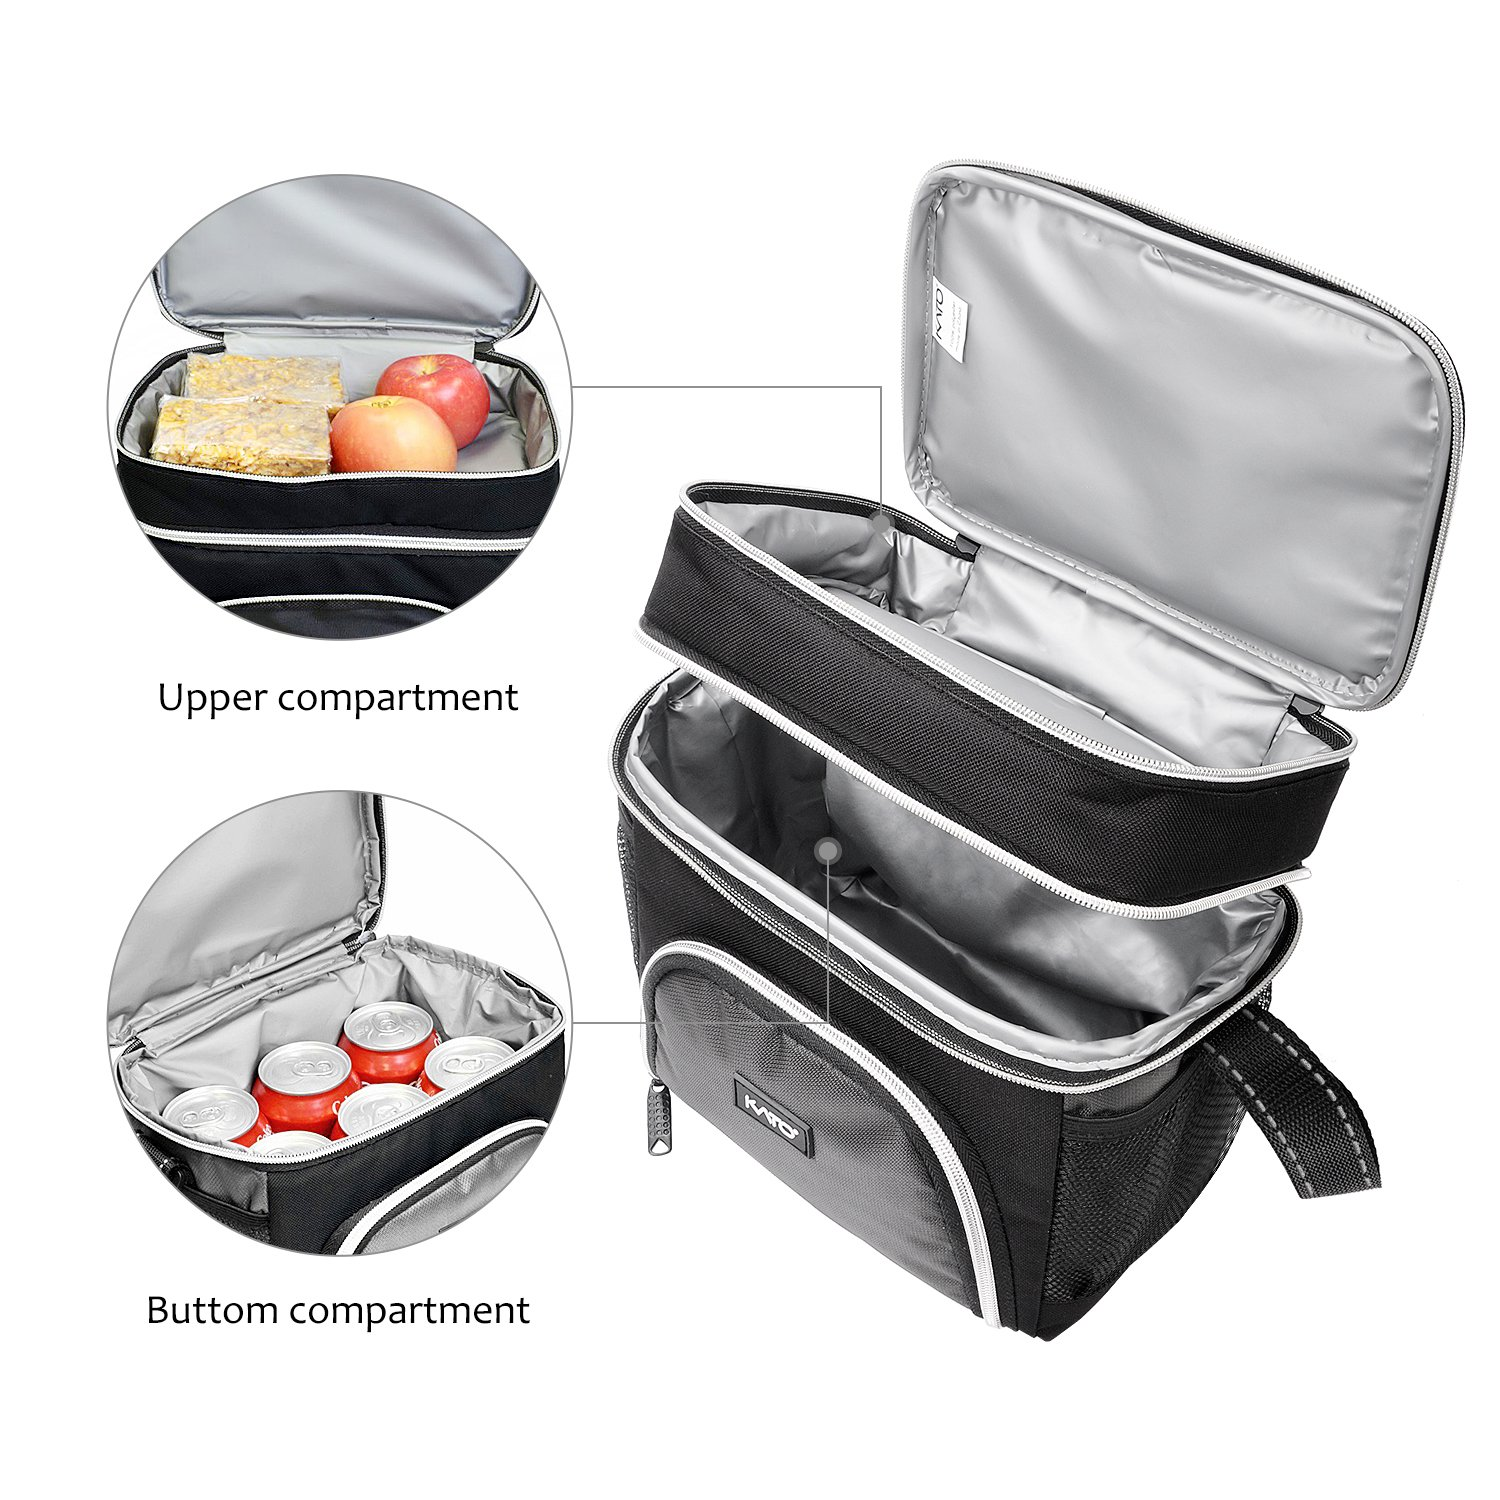 Insulated Lunch Cooler Bag, Kato Adult Dual Compartment Reusable Bento Lunch Box Tote with Shoulder Strap, Grey